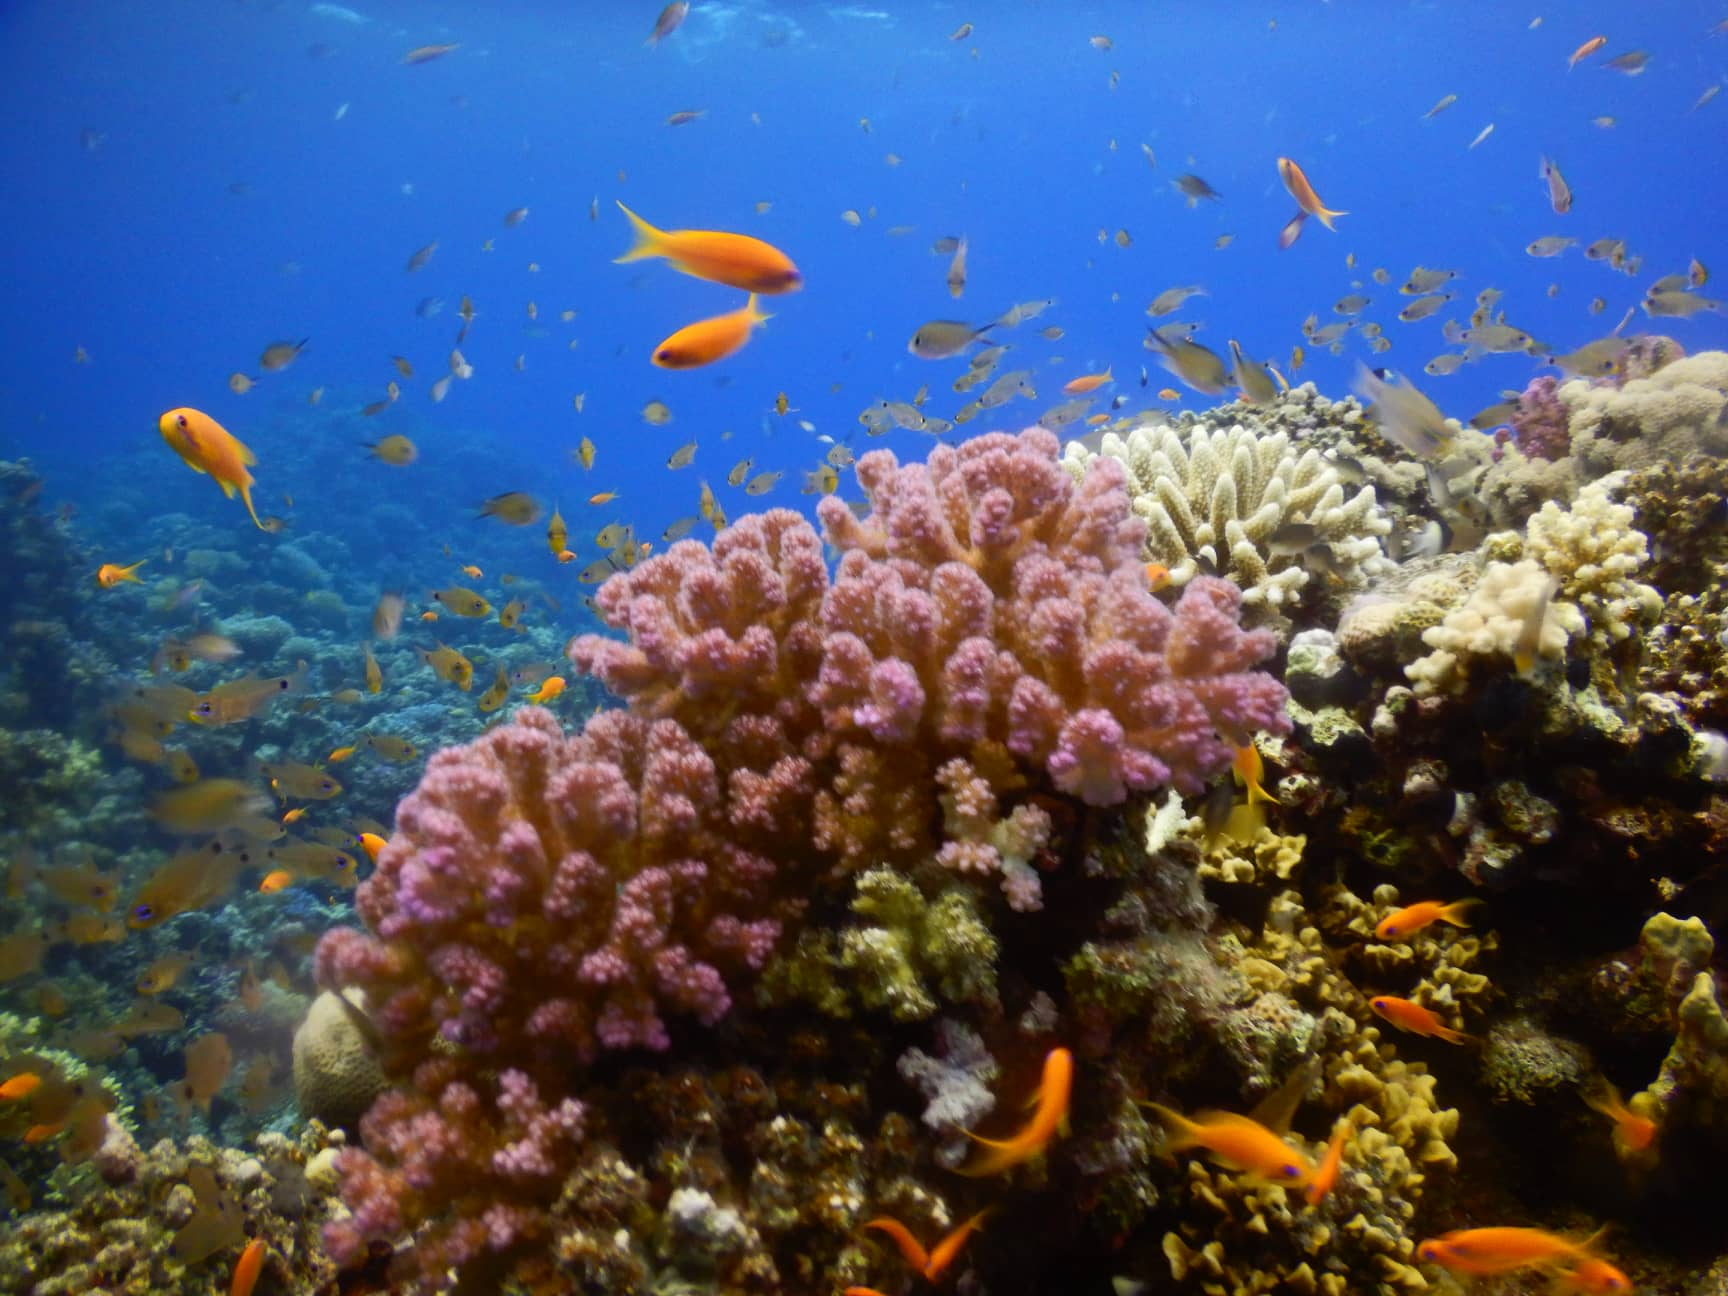 Egypt-REDSEA-Hurghada-Divepro-Academy-Diving-Center-Small-Fish-House-Reef